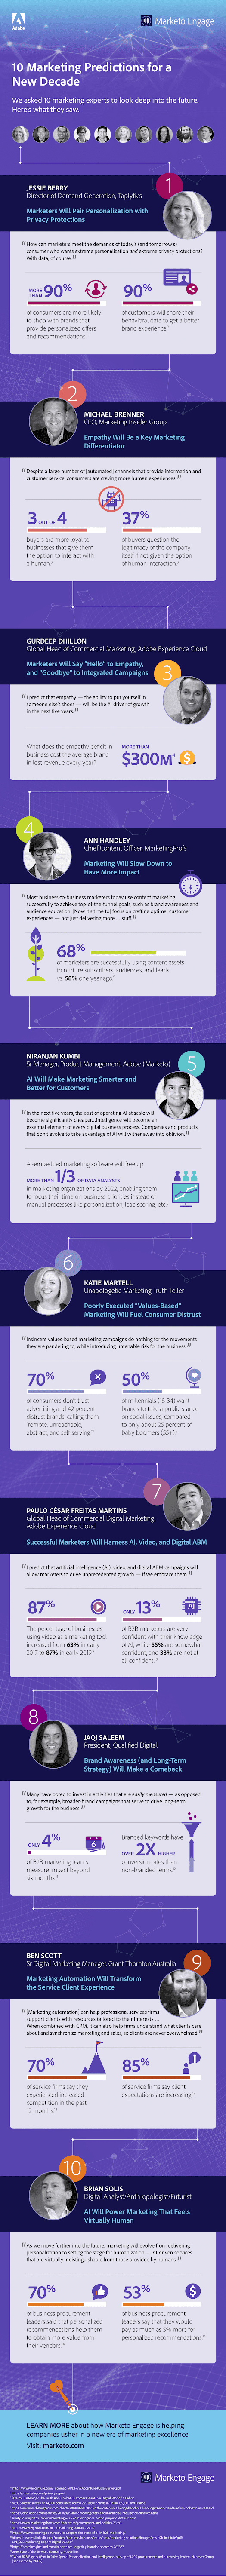 Marketing predictions infographic